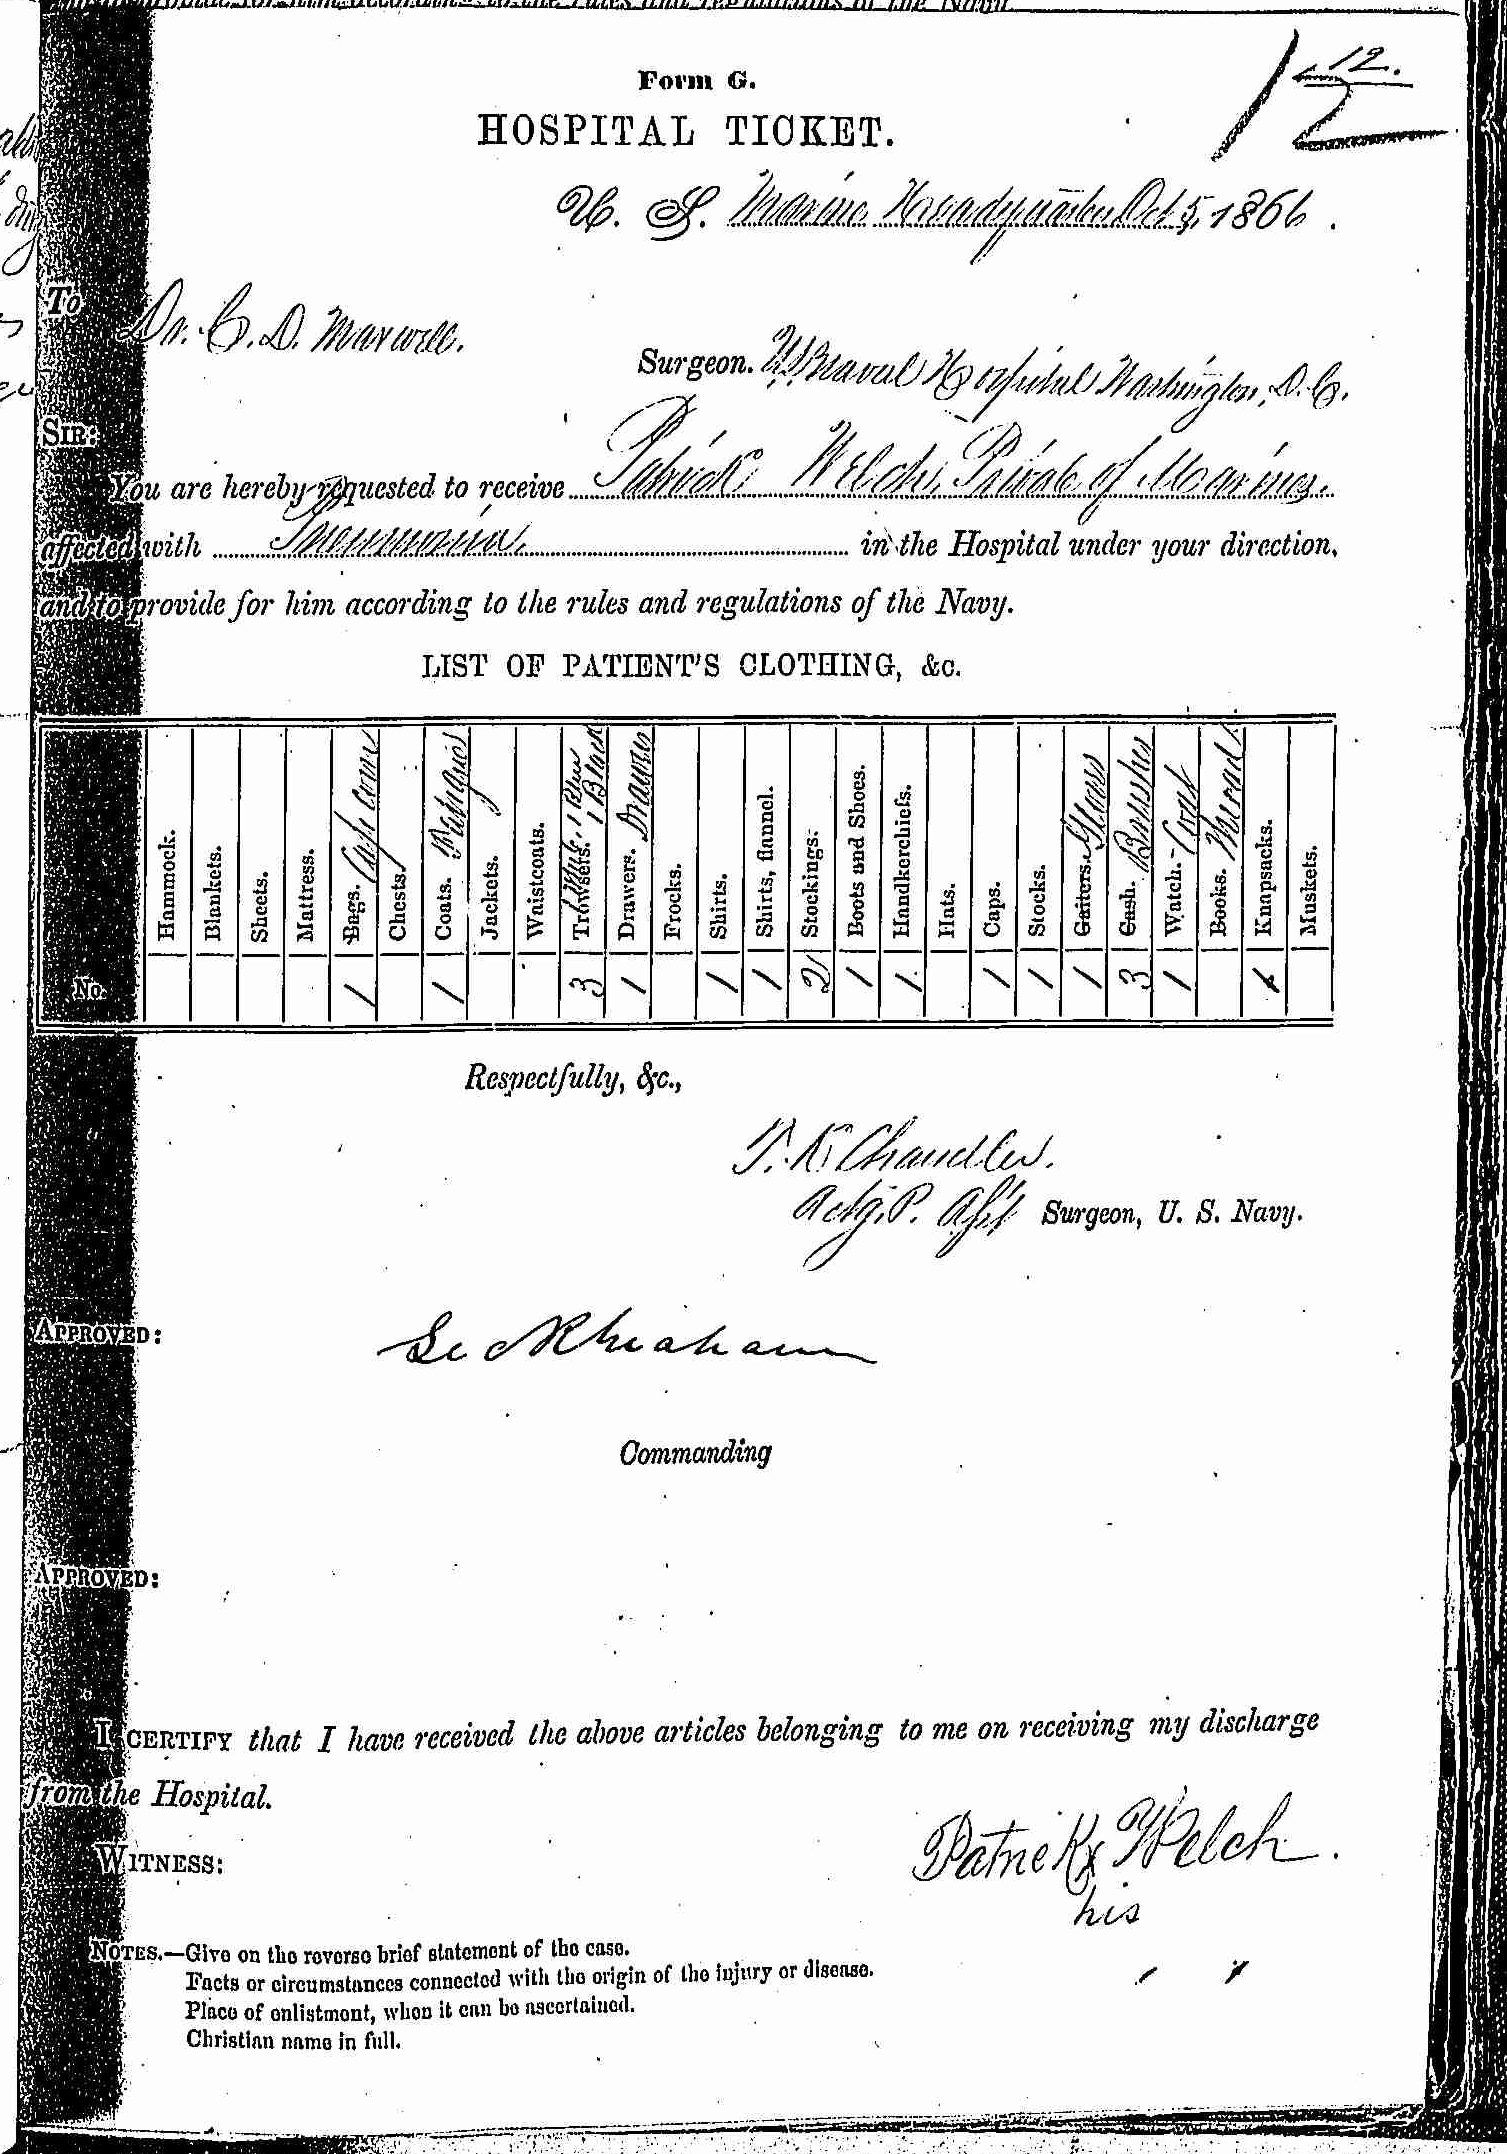 Entry for Patrick Welch (page 1 of 2) in the log Hospital Tickets and Case Papers - Naval Hospital - Washington, D.C. - 1865-68